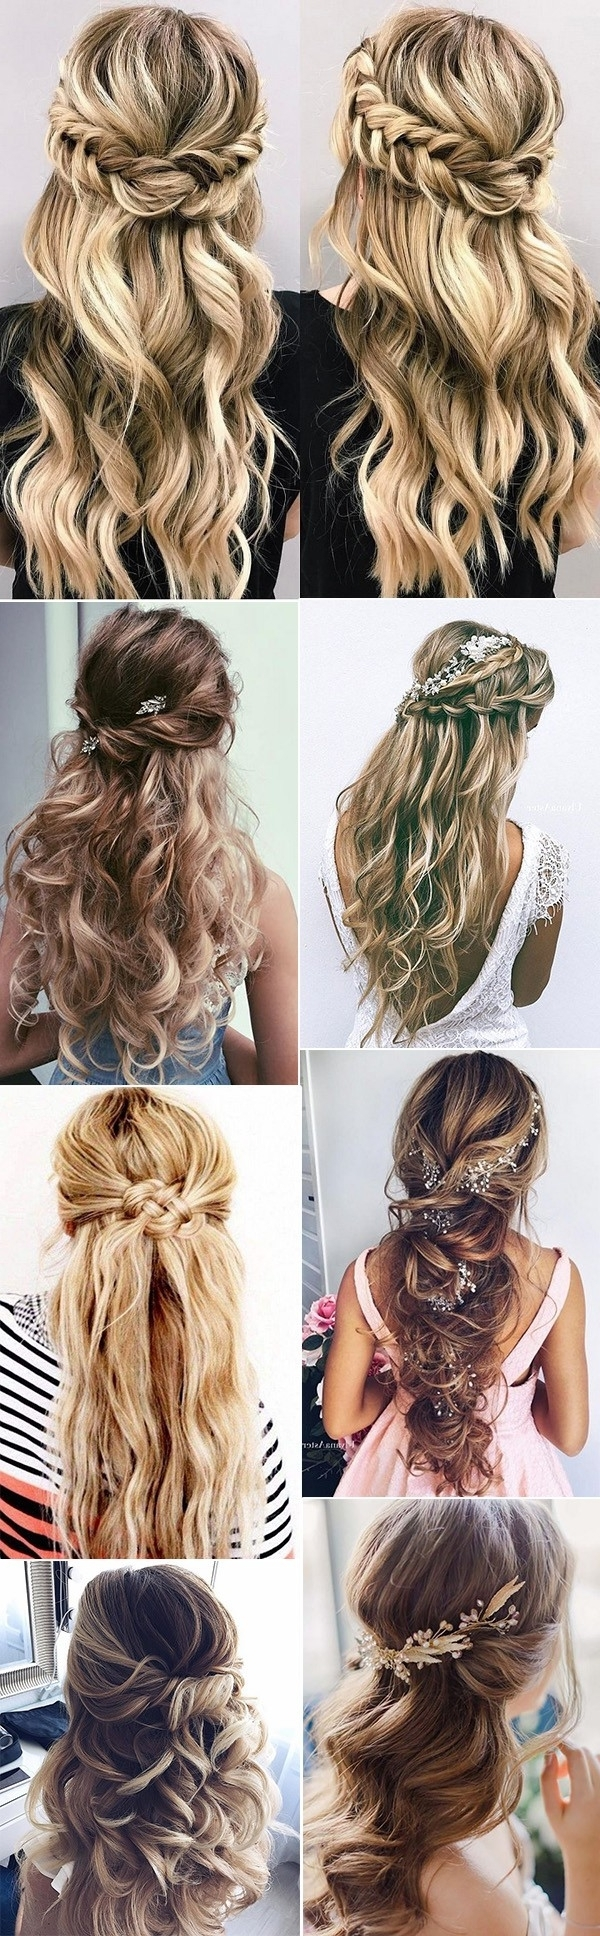 15 Chic Half Up Half Down Wedding Hairstyles For Long Hair Within Long Hair Half Updo Hairstyles (View 11 of 15)